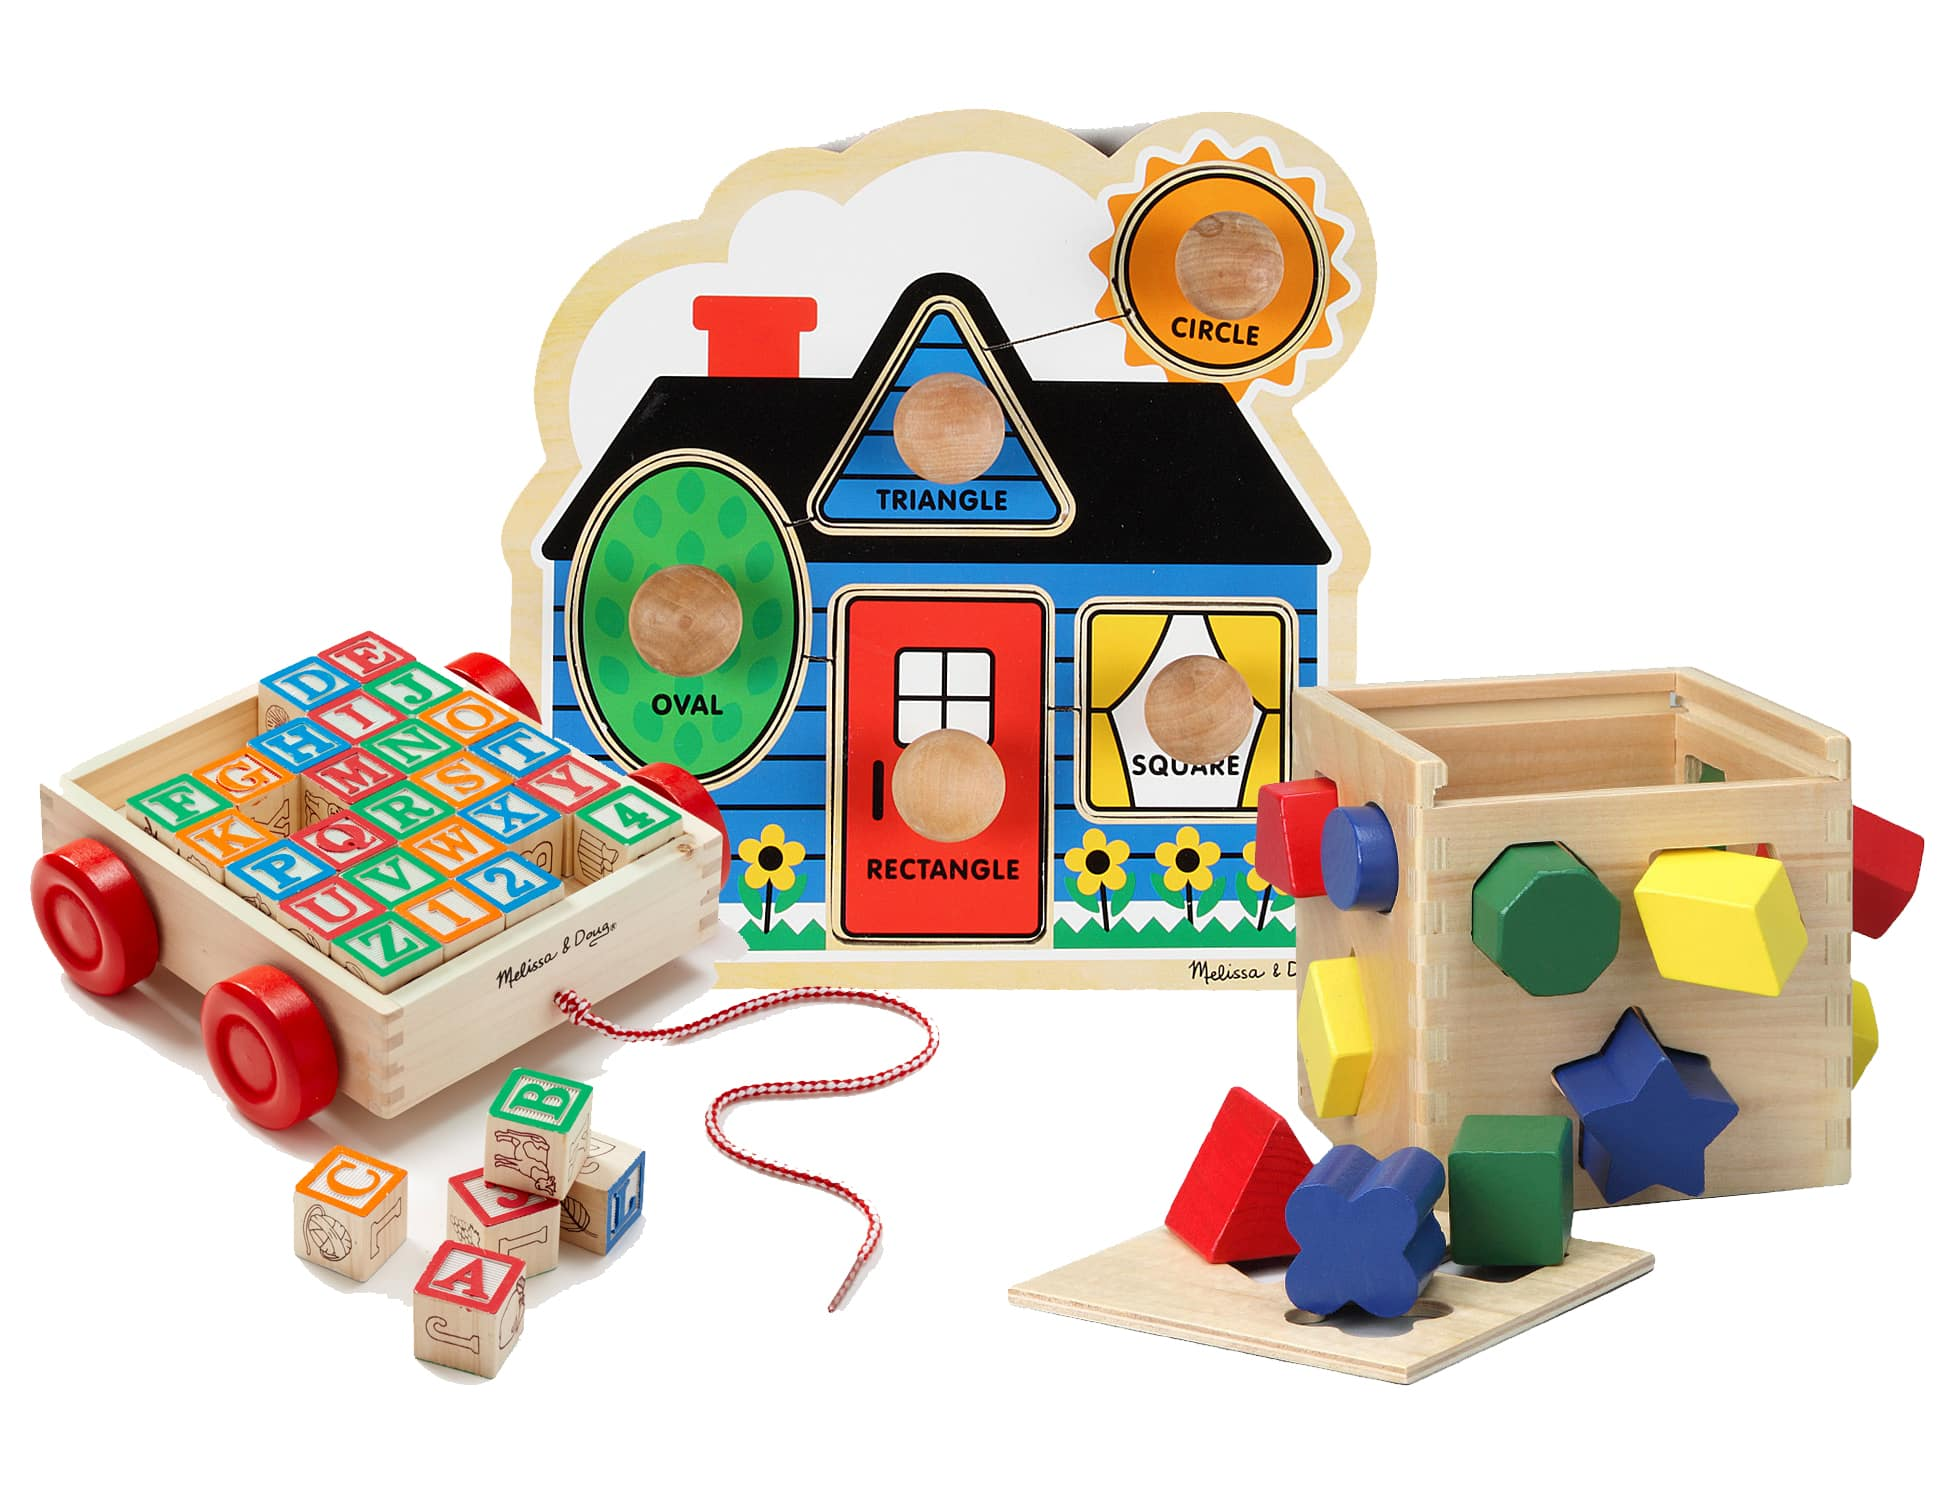 Melissa & Doug Sale + $10 off $30: Jumbo Knob Puzzle + ABC Block Cart + Shape-Sorting Cube $20.47 + Free shipping & much more w/ Masterpass checkout